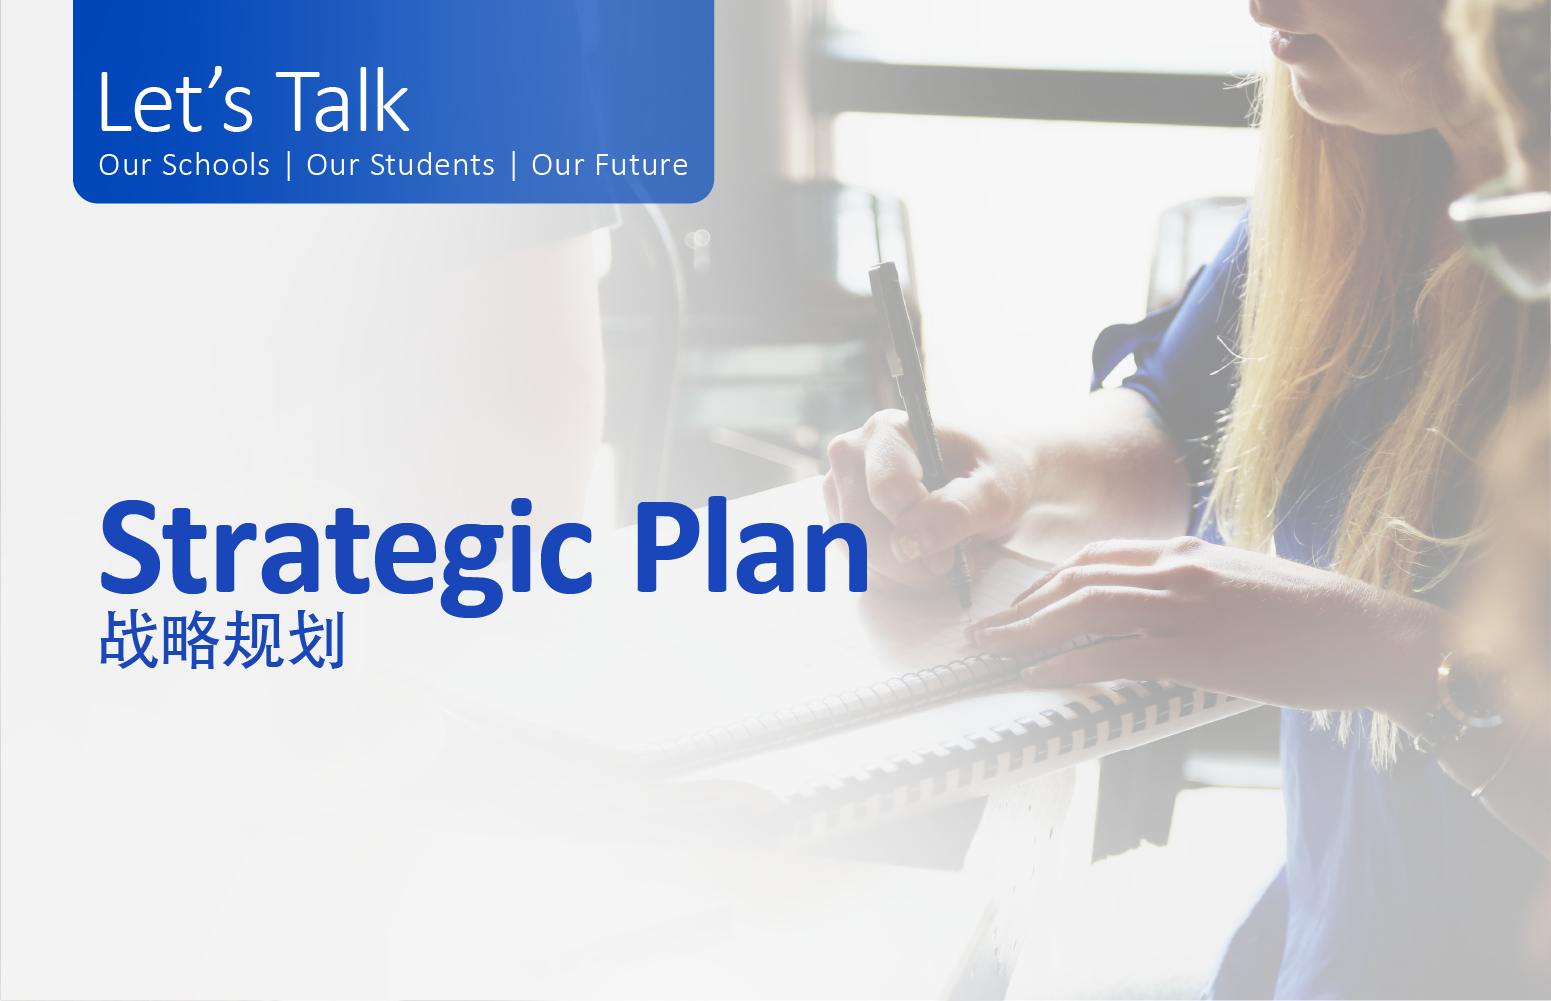 Let's Talk: Strategic Plan